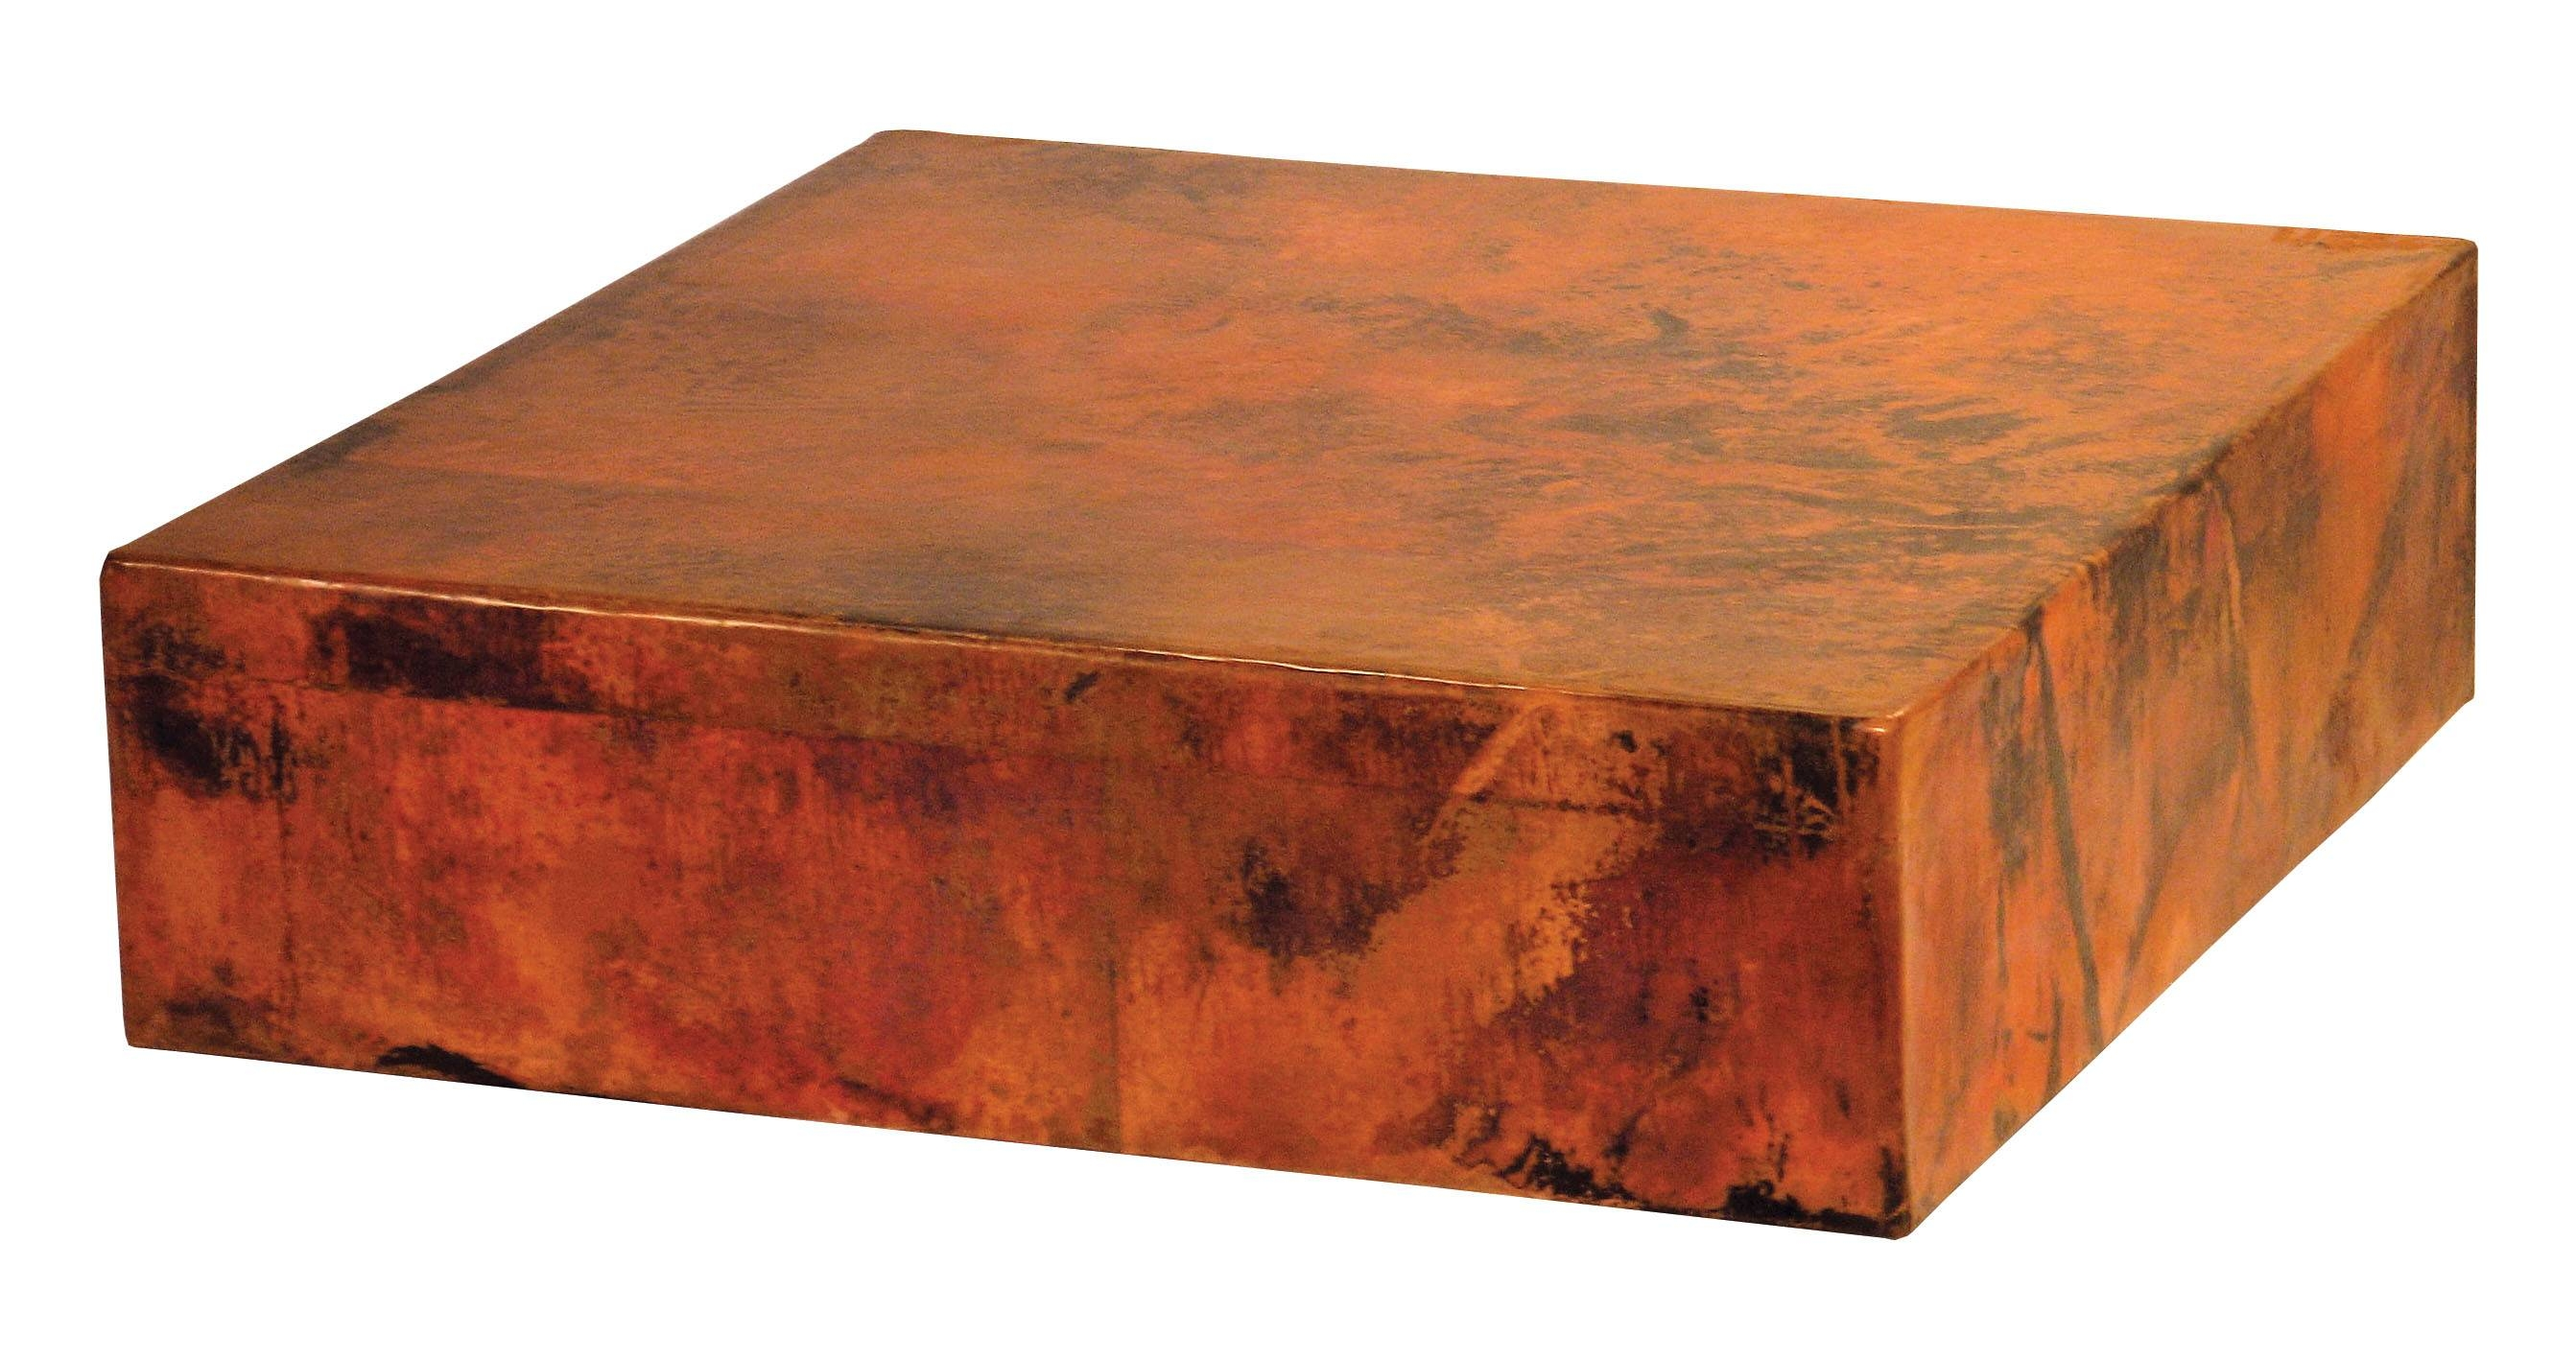 Copper Cube Coffee Table Storage Modern Large And End Rustic Top inside Round Coffee Tables With Storage (Image 12 of 30)